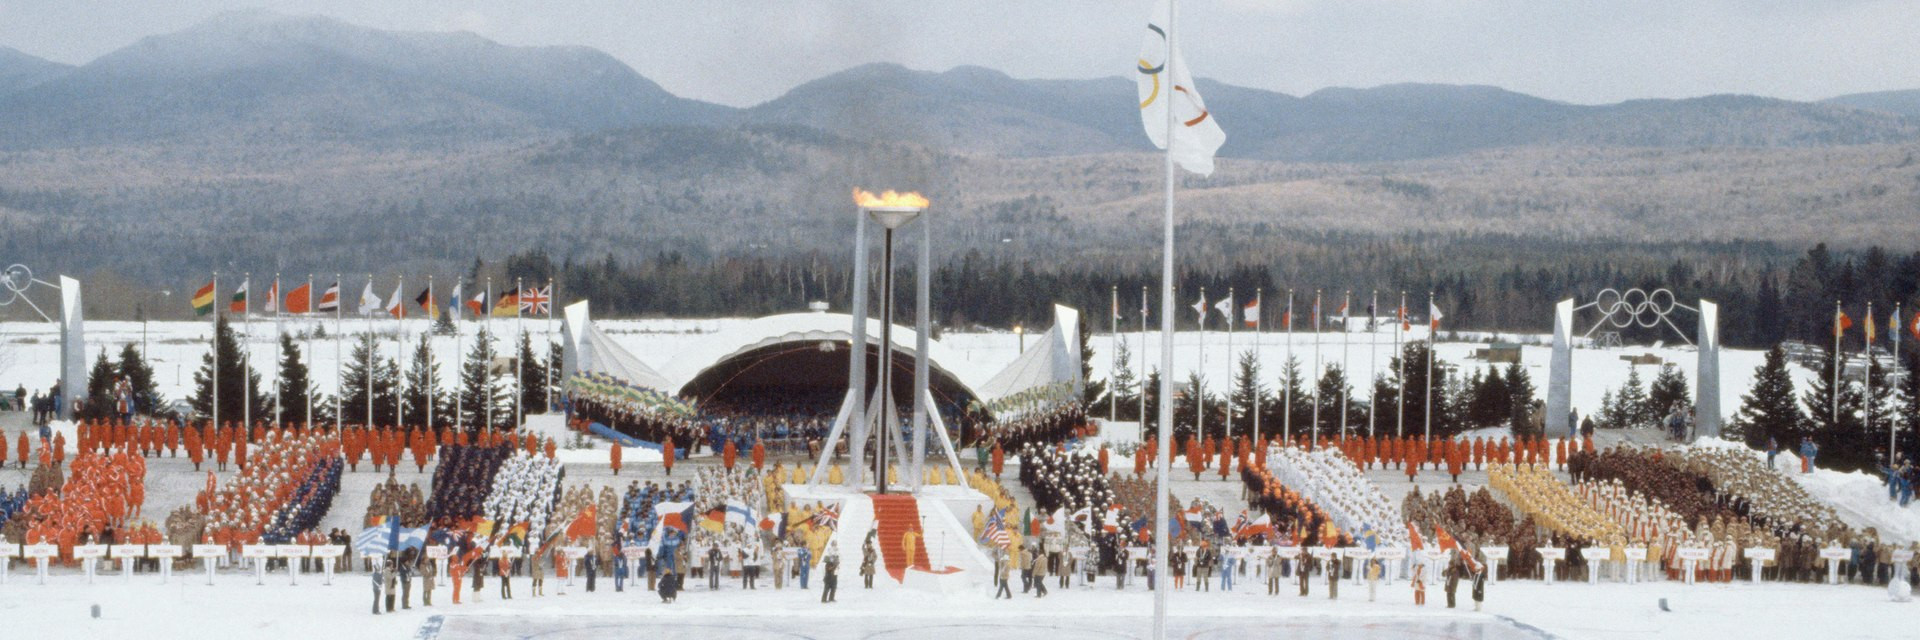 Lake Placid 1980 banner